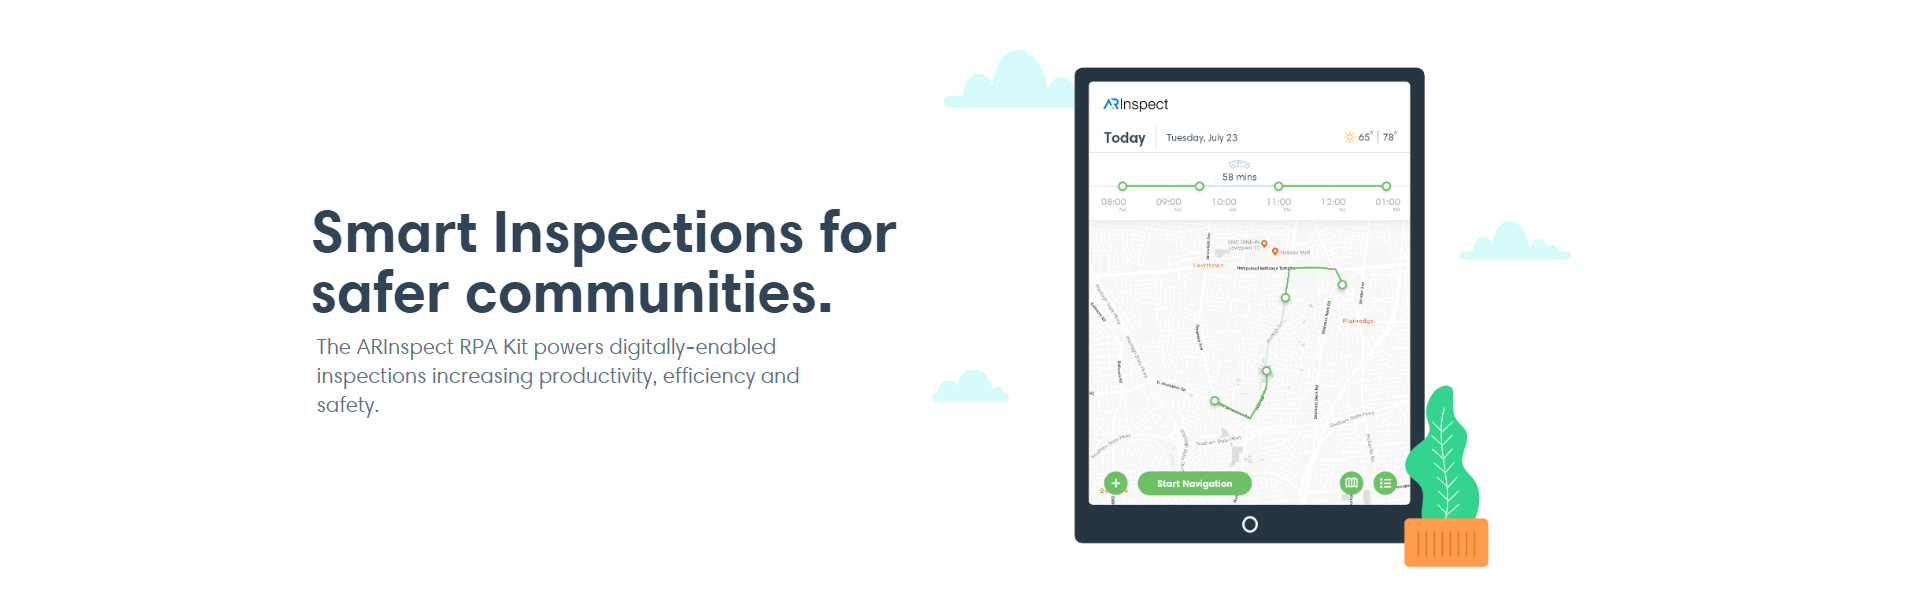 AR Inspect Smart Inspections for safer communities Mobile Inspection Application Back-Office Portal